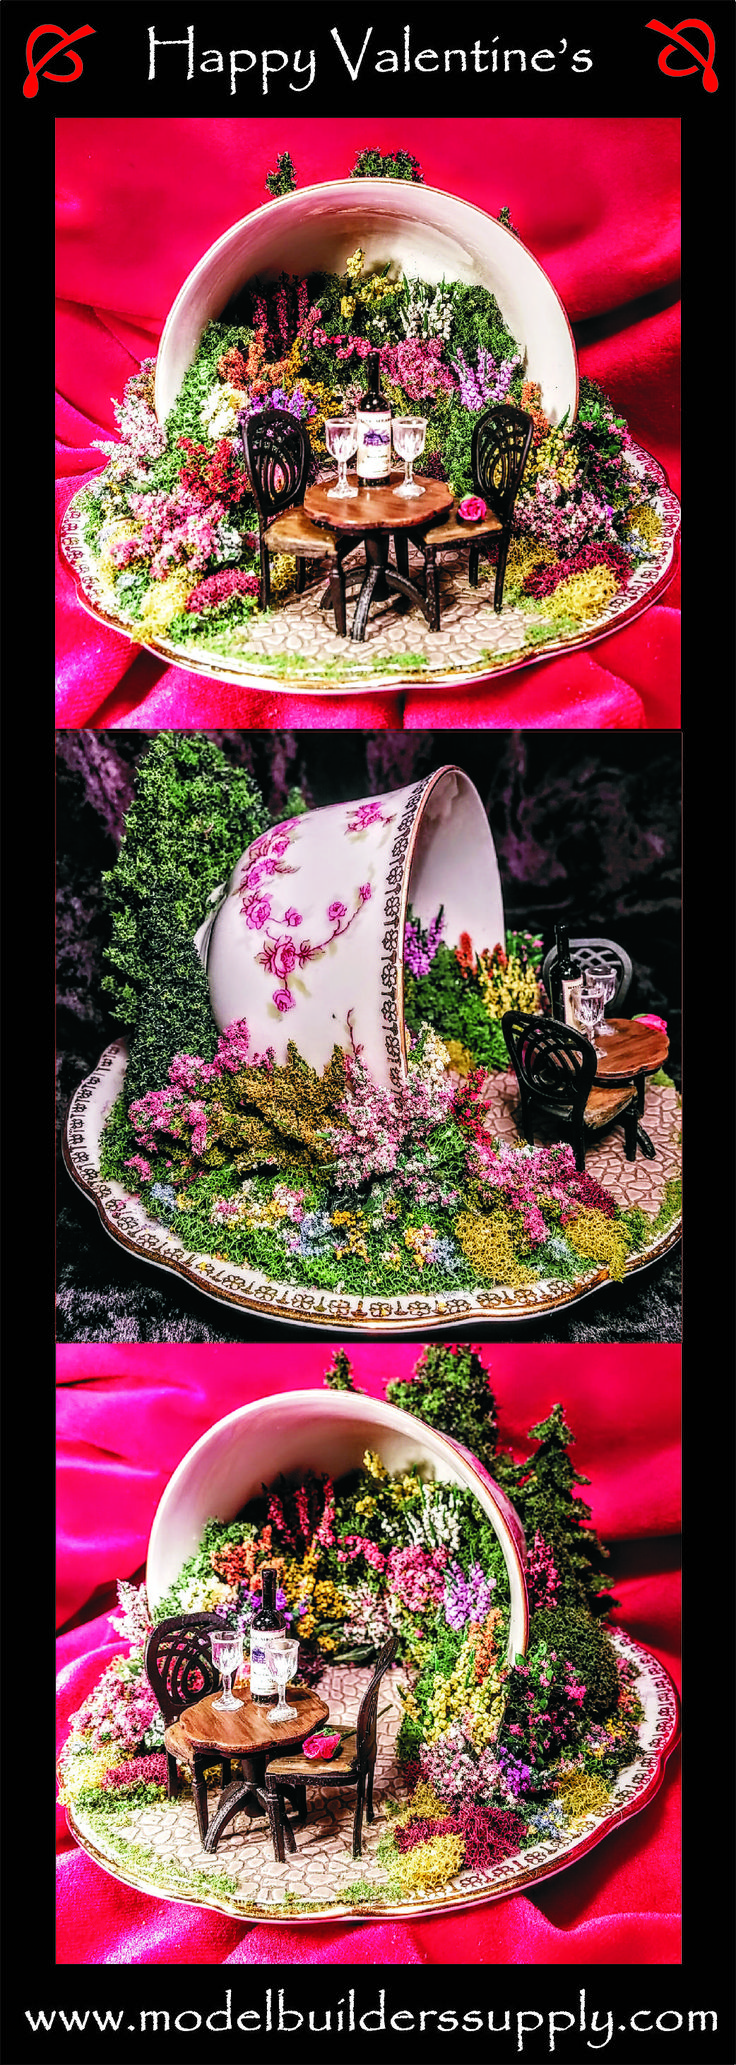 "A rose is just a rose, until you put it in a miniature English garden inside a teacup, then it's something very special. This teacup is appropriately named "" Bridal Rose"""